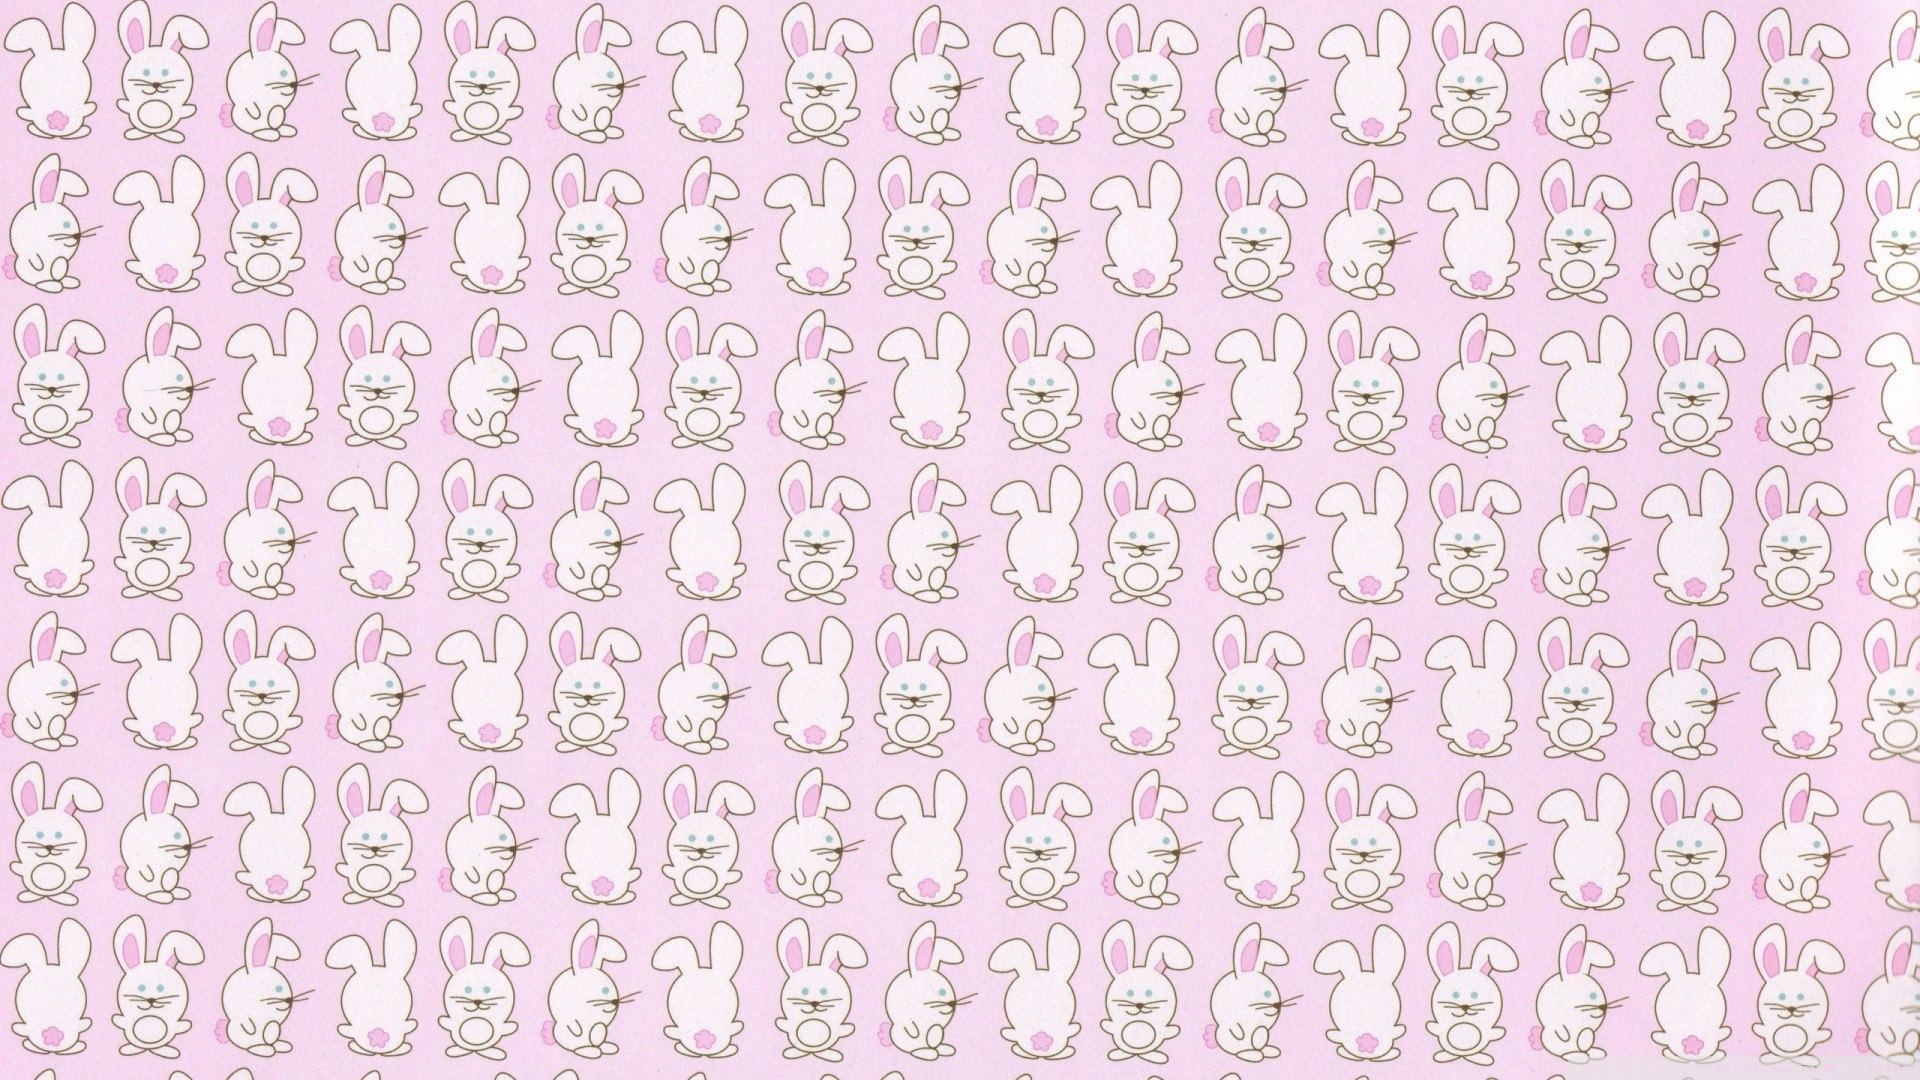 1920x1080 Cute Wallpapers Wallpaper Pattern Bunny Patterns Images